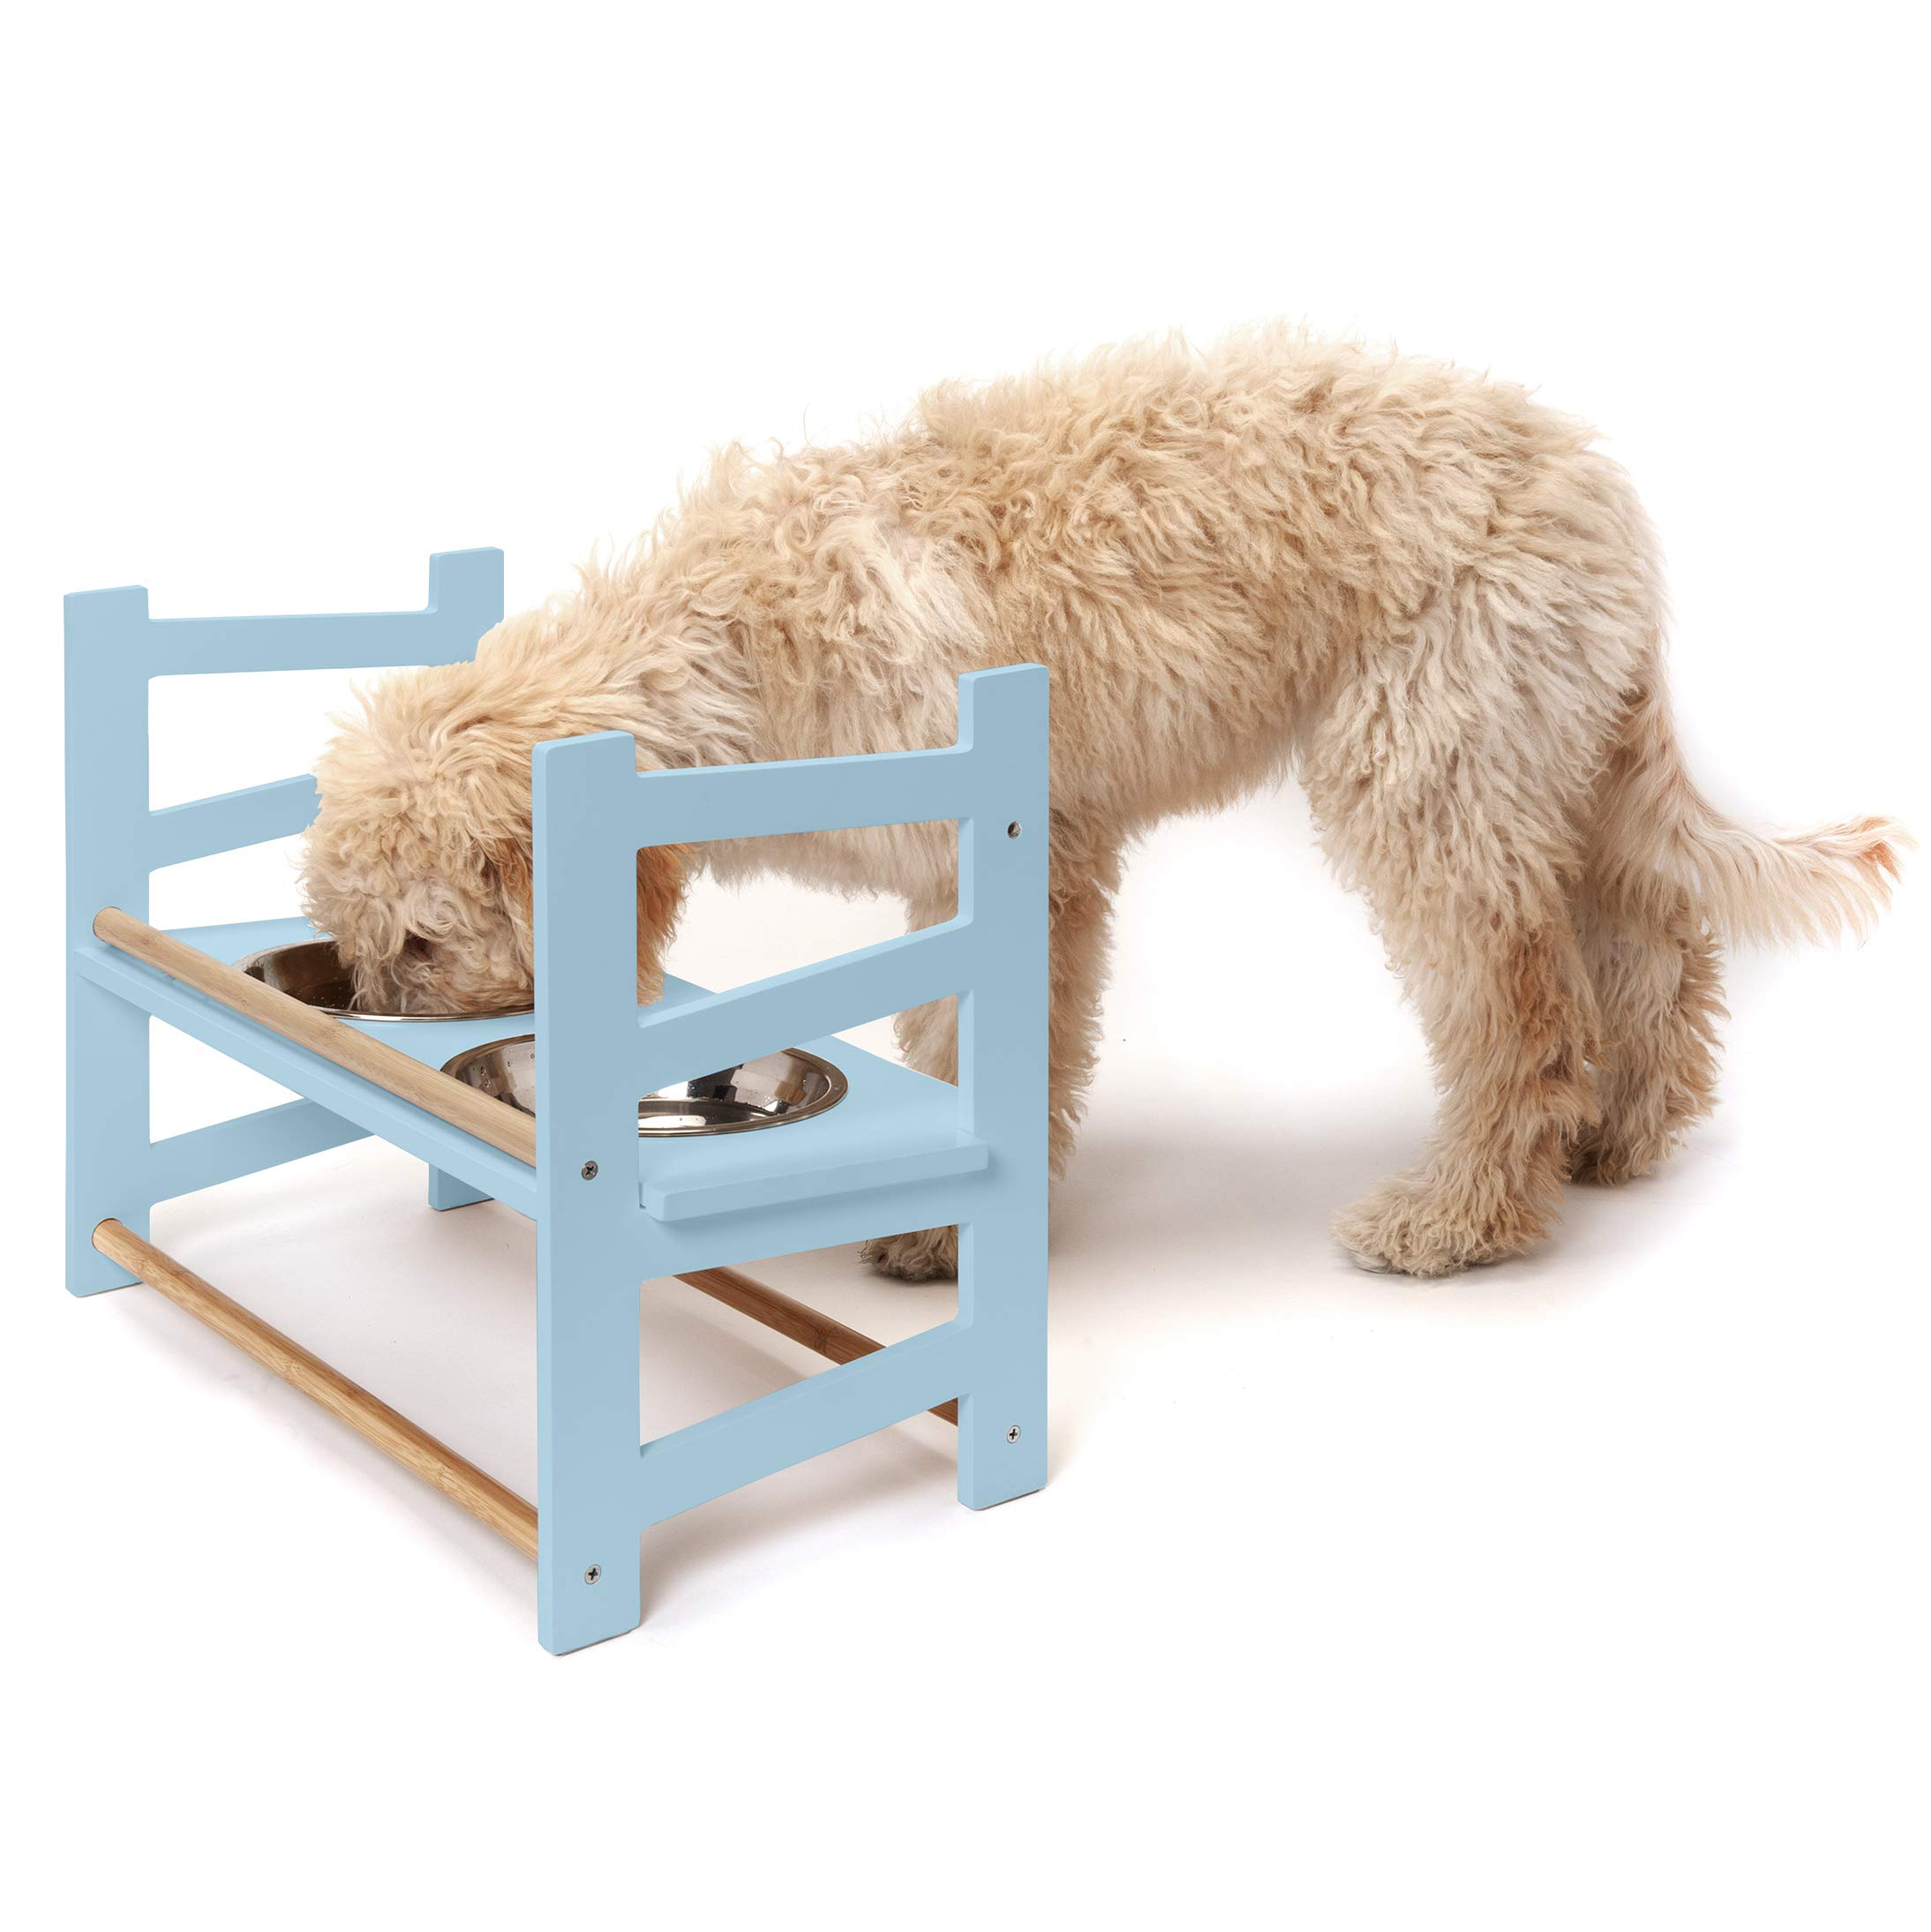 Furhaven Pet Feeder | Ladder Style Height Adjustable Raised Kitchen Pet Feeding Station w/ Stainless Steel Food Bowls for Dogs & Cats, Cloud Blue, Large by Furhaven